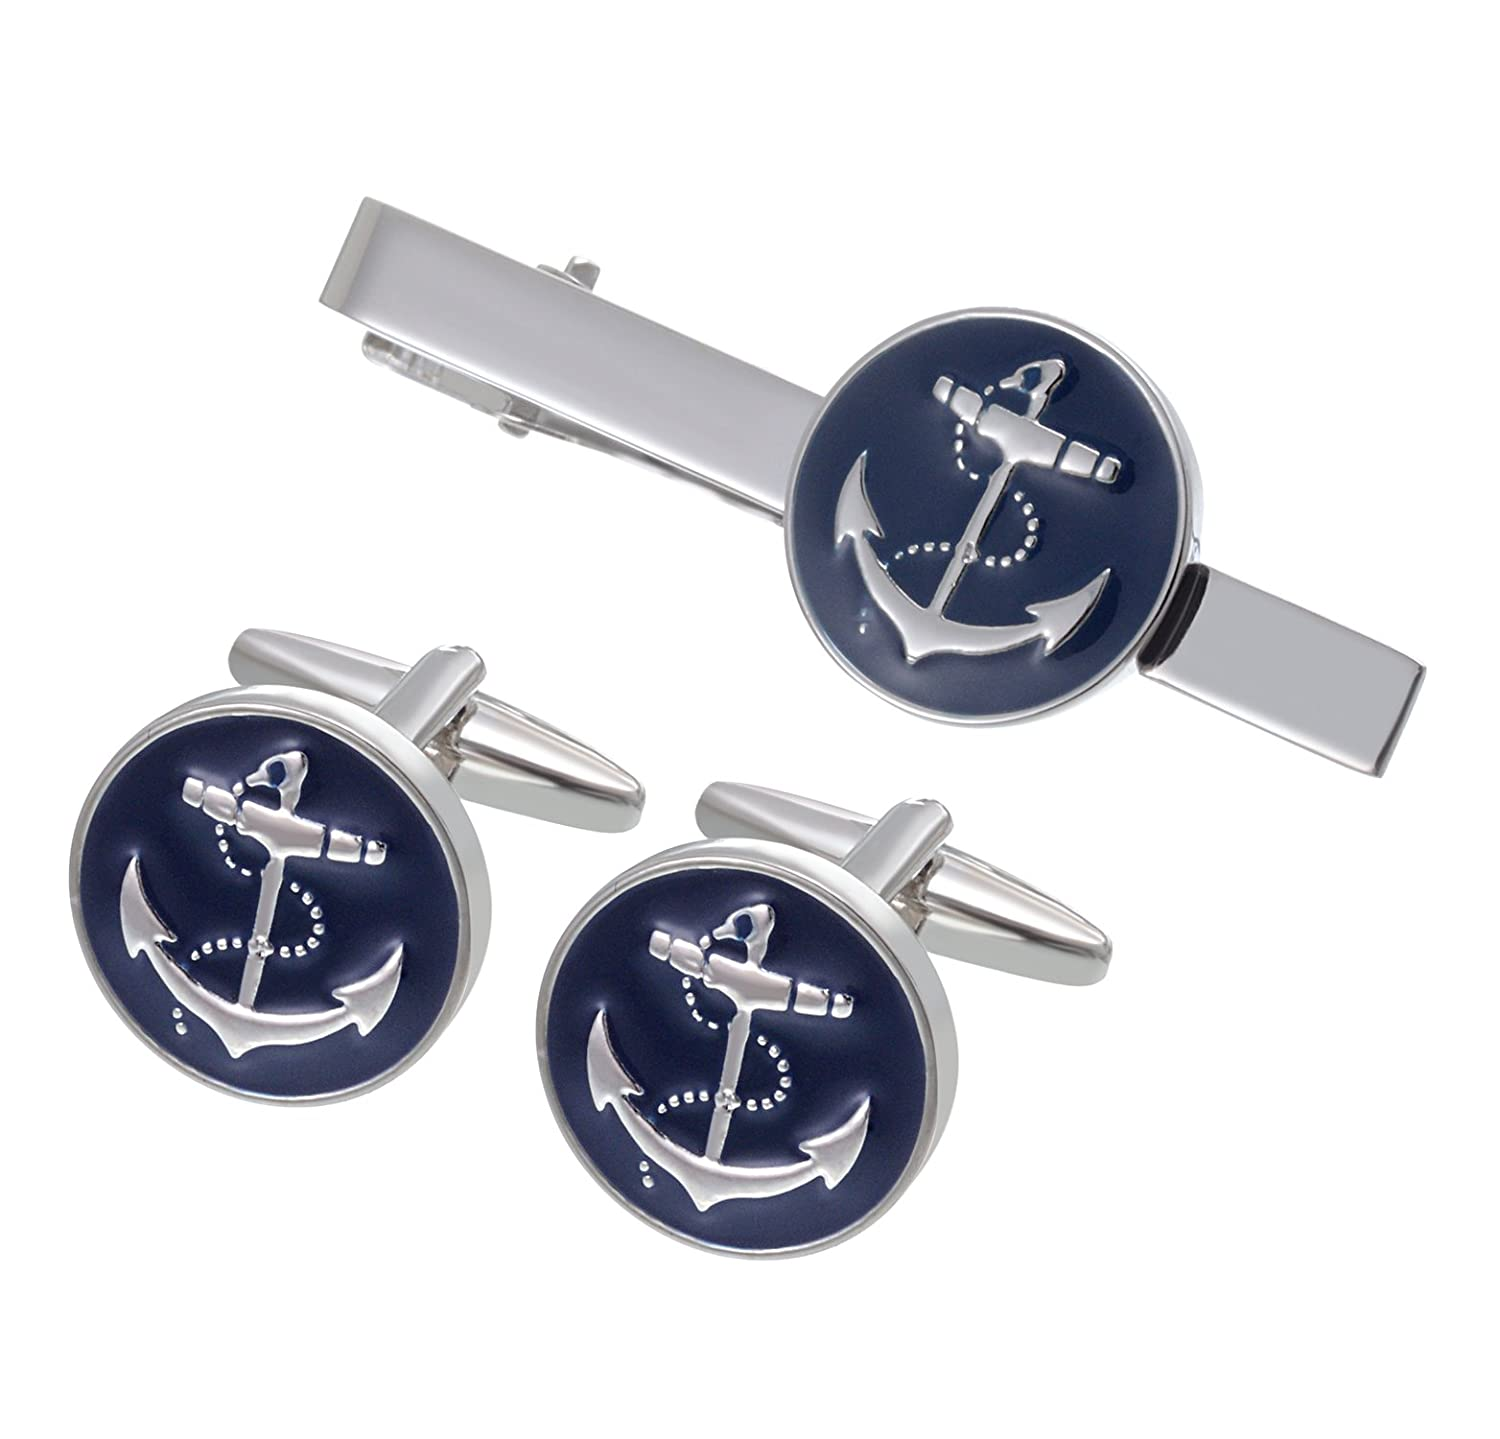 Salutto Men's Cufflink and Tie Clip Set Fashion Special Shape 1222Set YHT-09-30